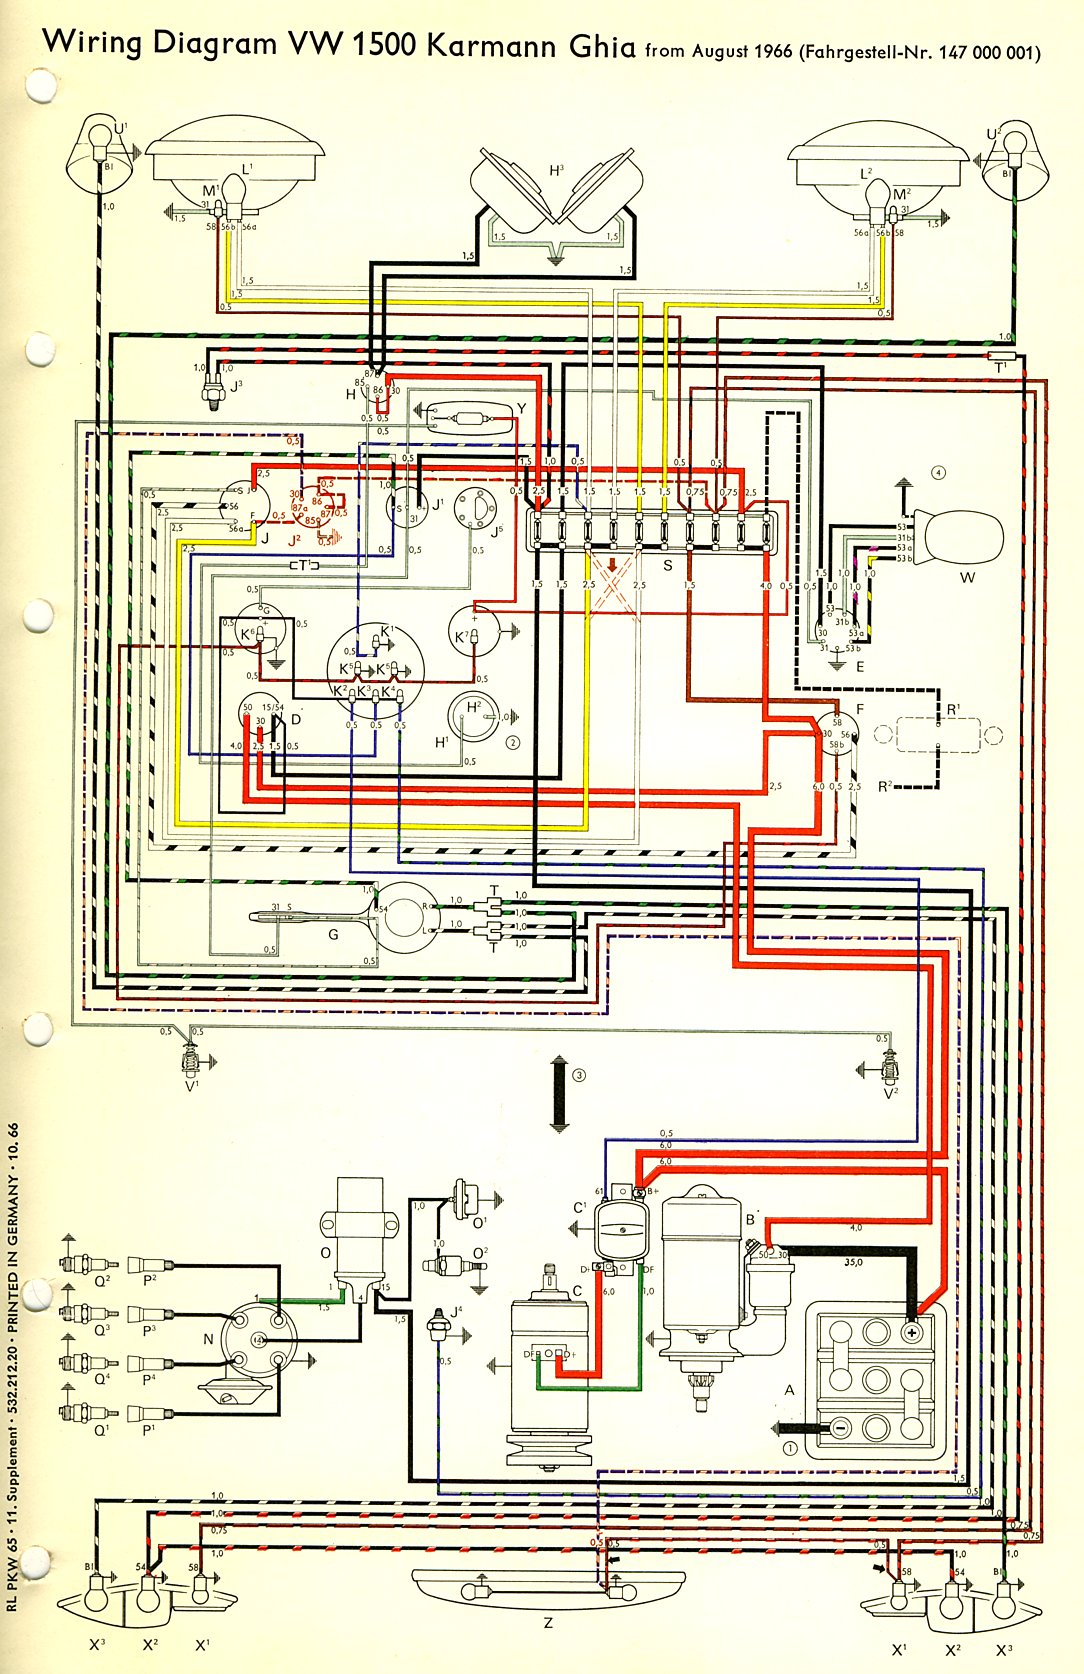 Karmann Ghia Wiring Diagram Data 1970 Pontiac Thesamba Com Diagrams 1968 Vw